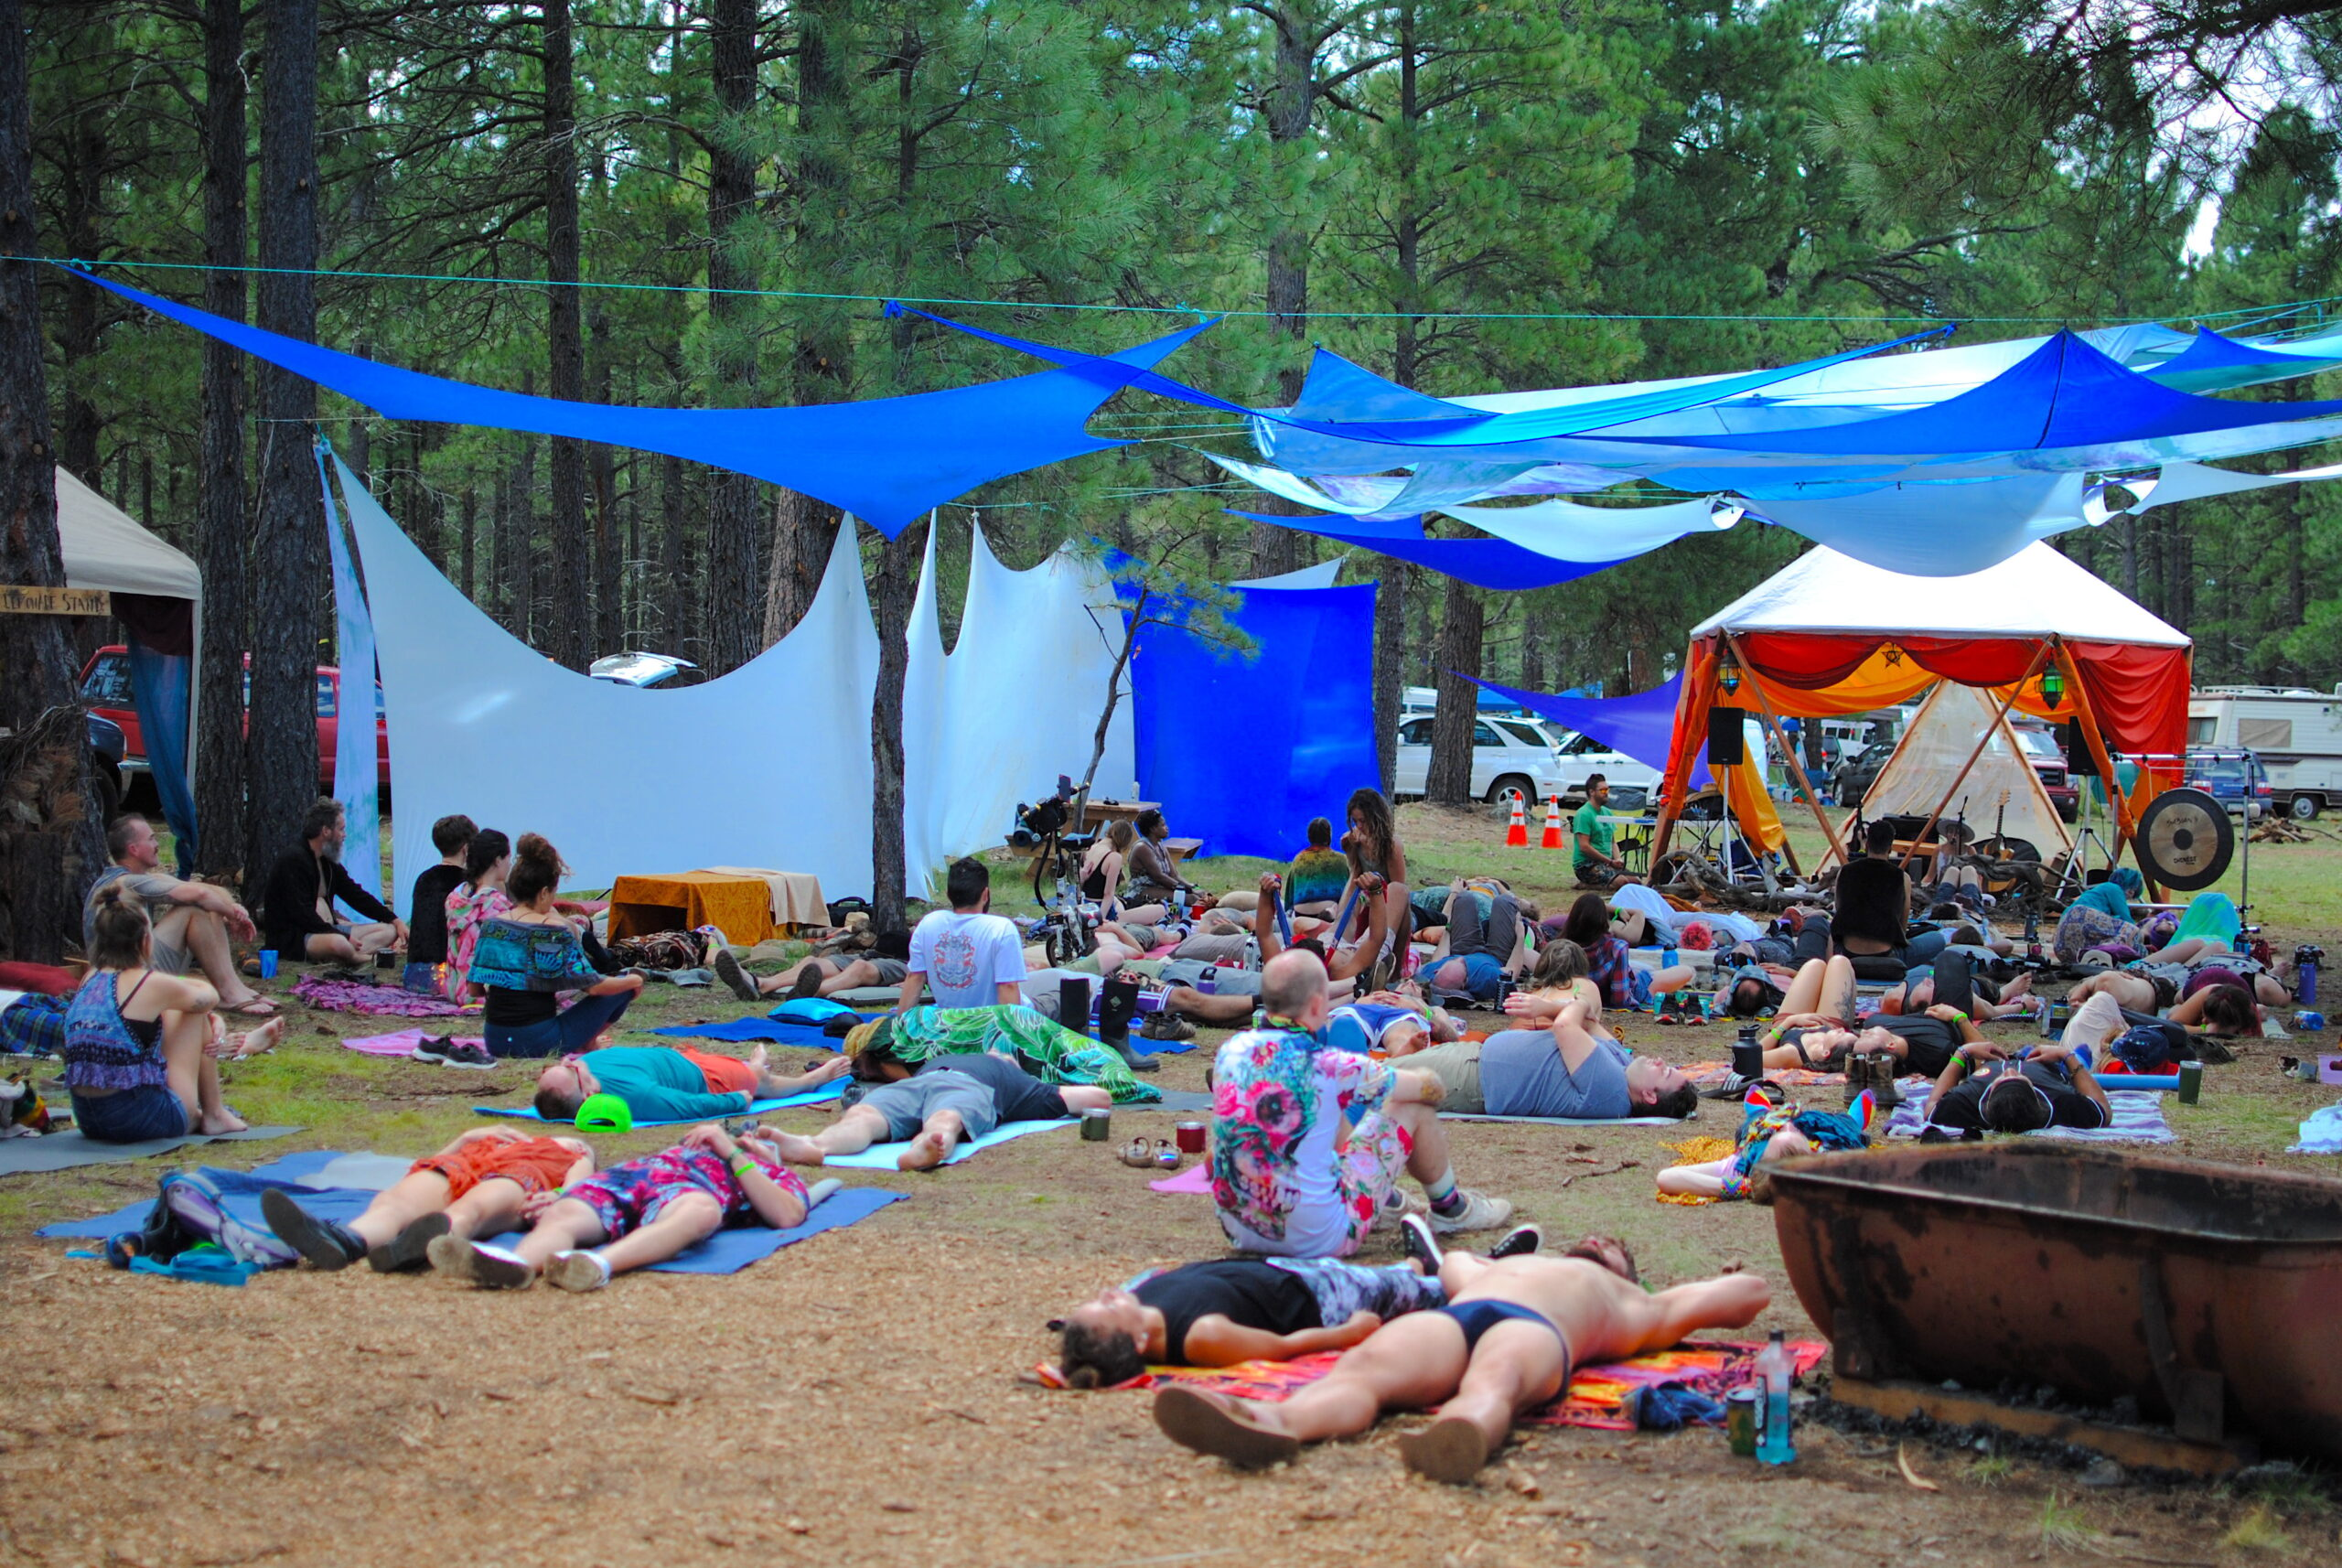 Festival goers relax and soak up the ambient Sound Bath by Rogue Reverie. Photo by: Marissa Novel.